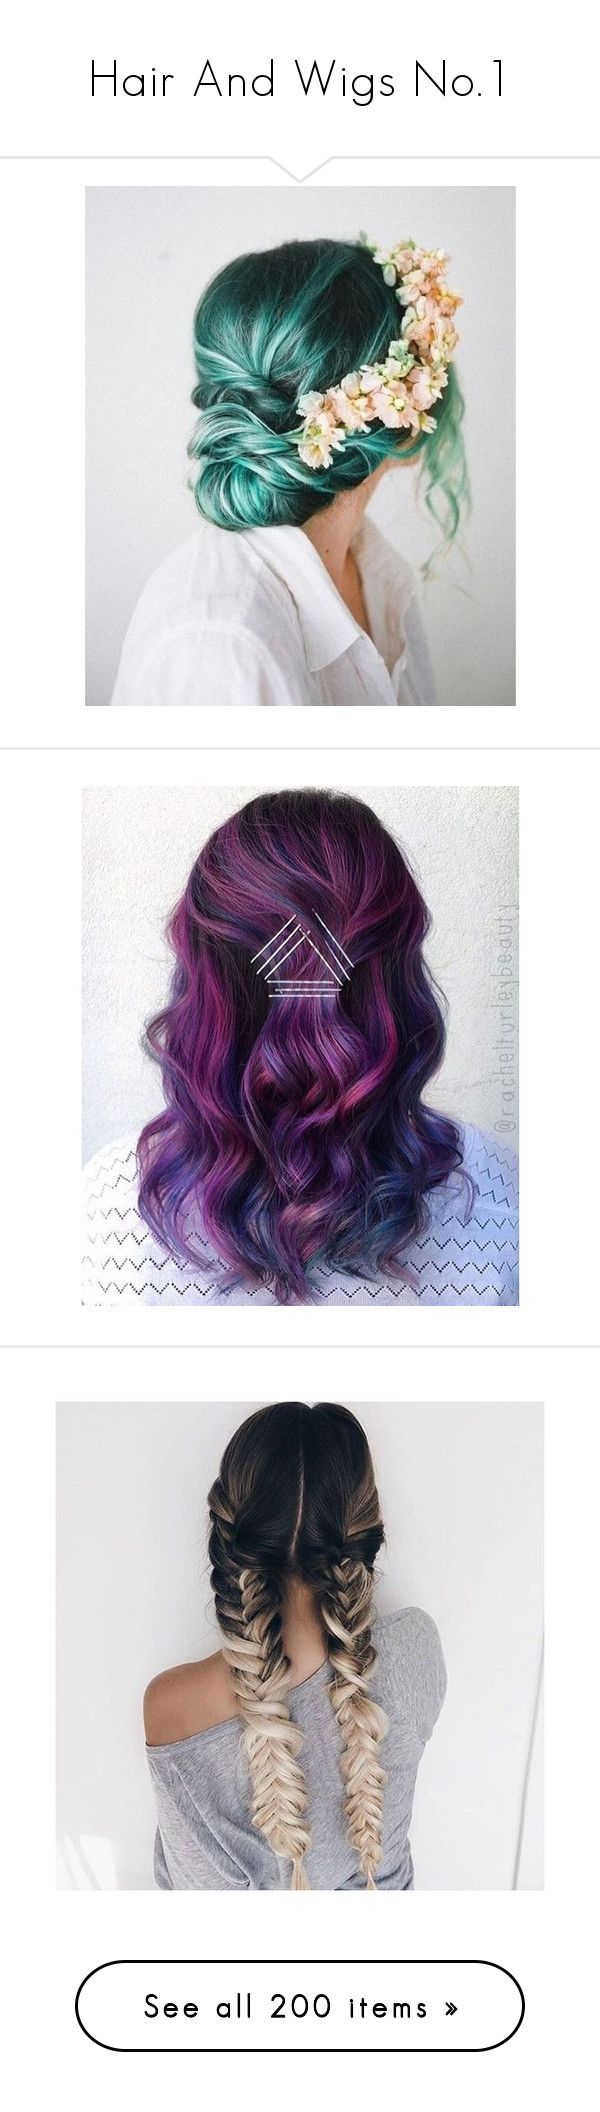 """Hair And Wigs No.1"" by maddie-kate2002 ❤ liked on Polyvore featuring beauty products, haircare, hair color, hair, hairstyles, hair styles, hair styling tools, hairstyle, backgrounds and short hair accessories"